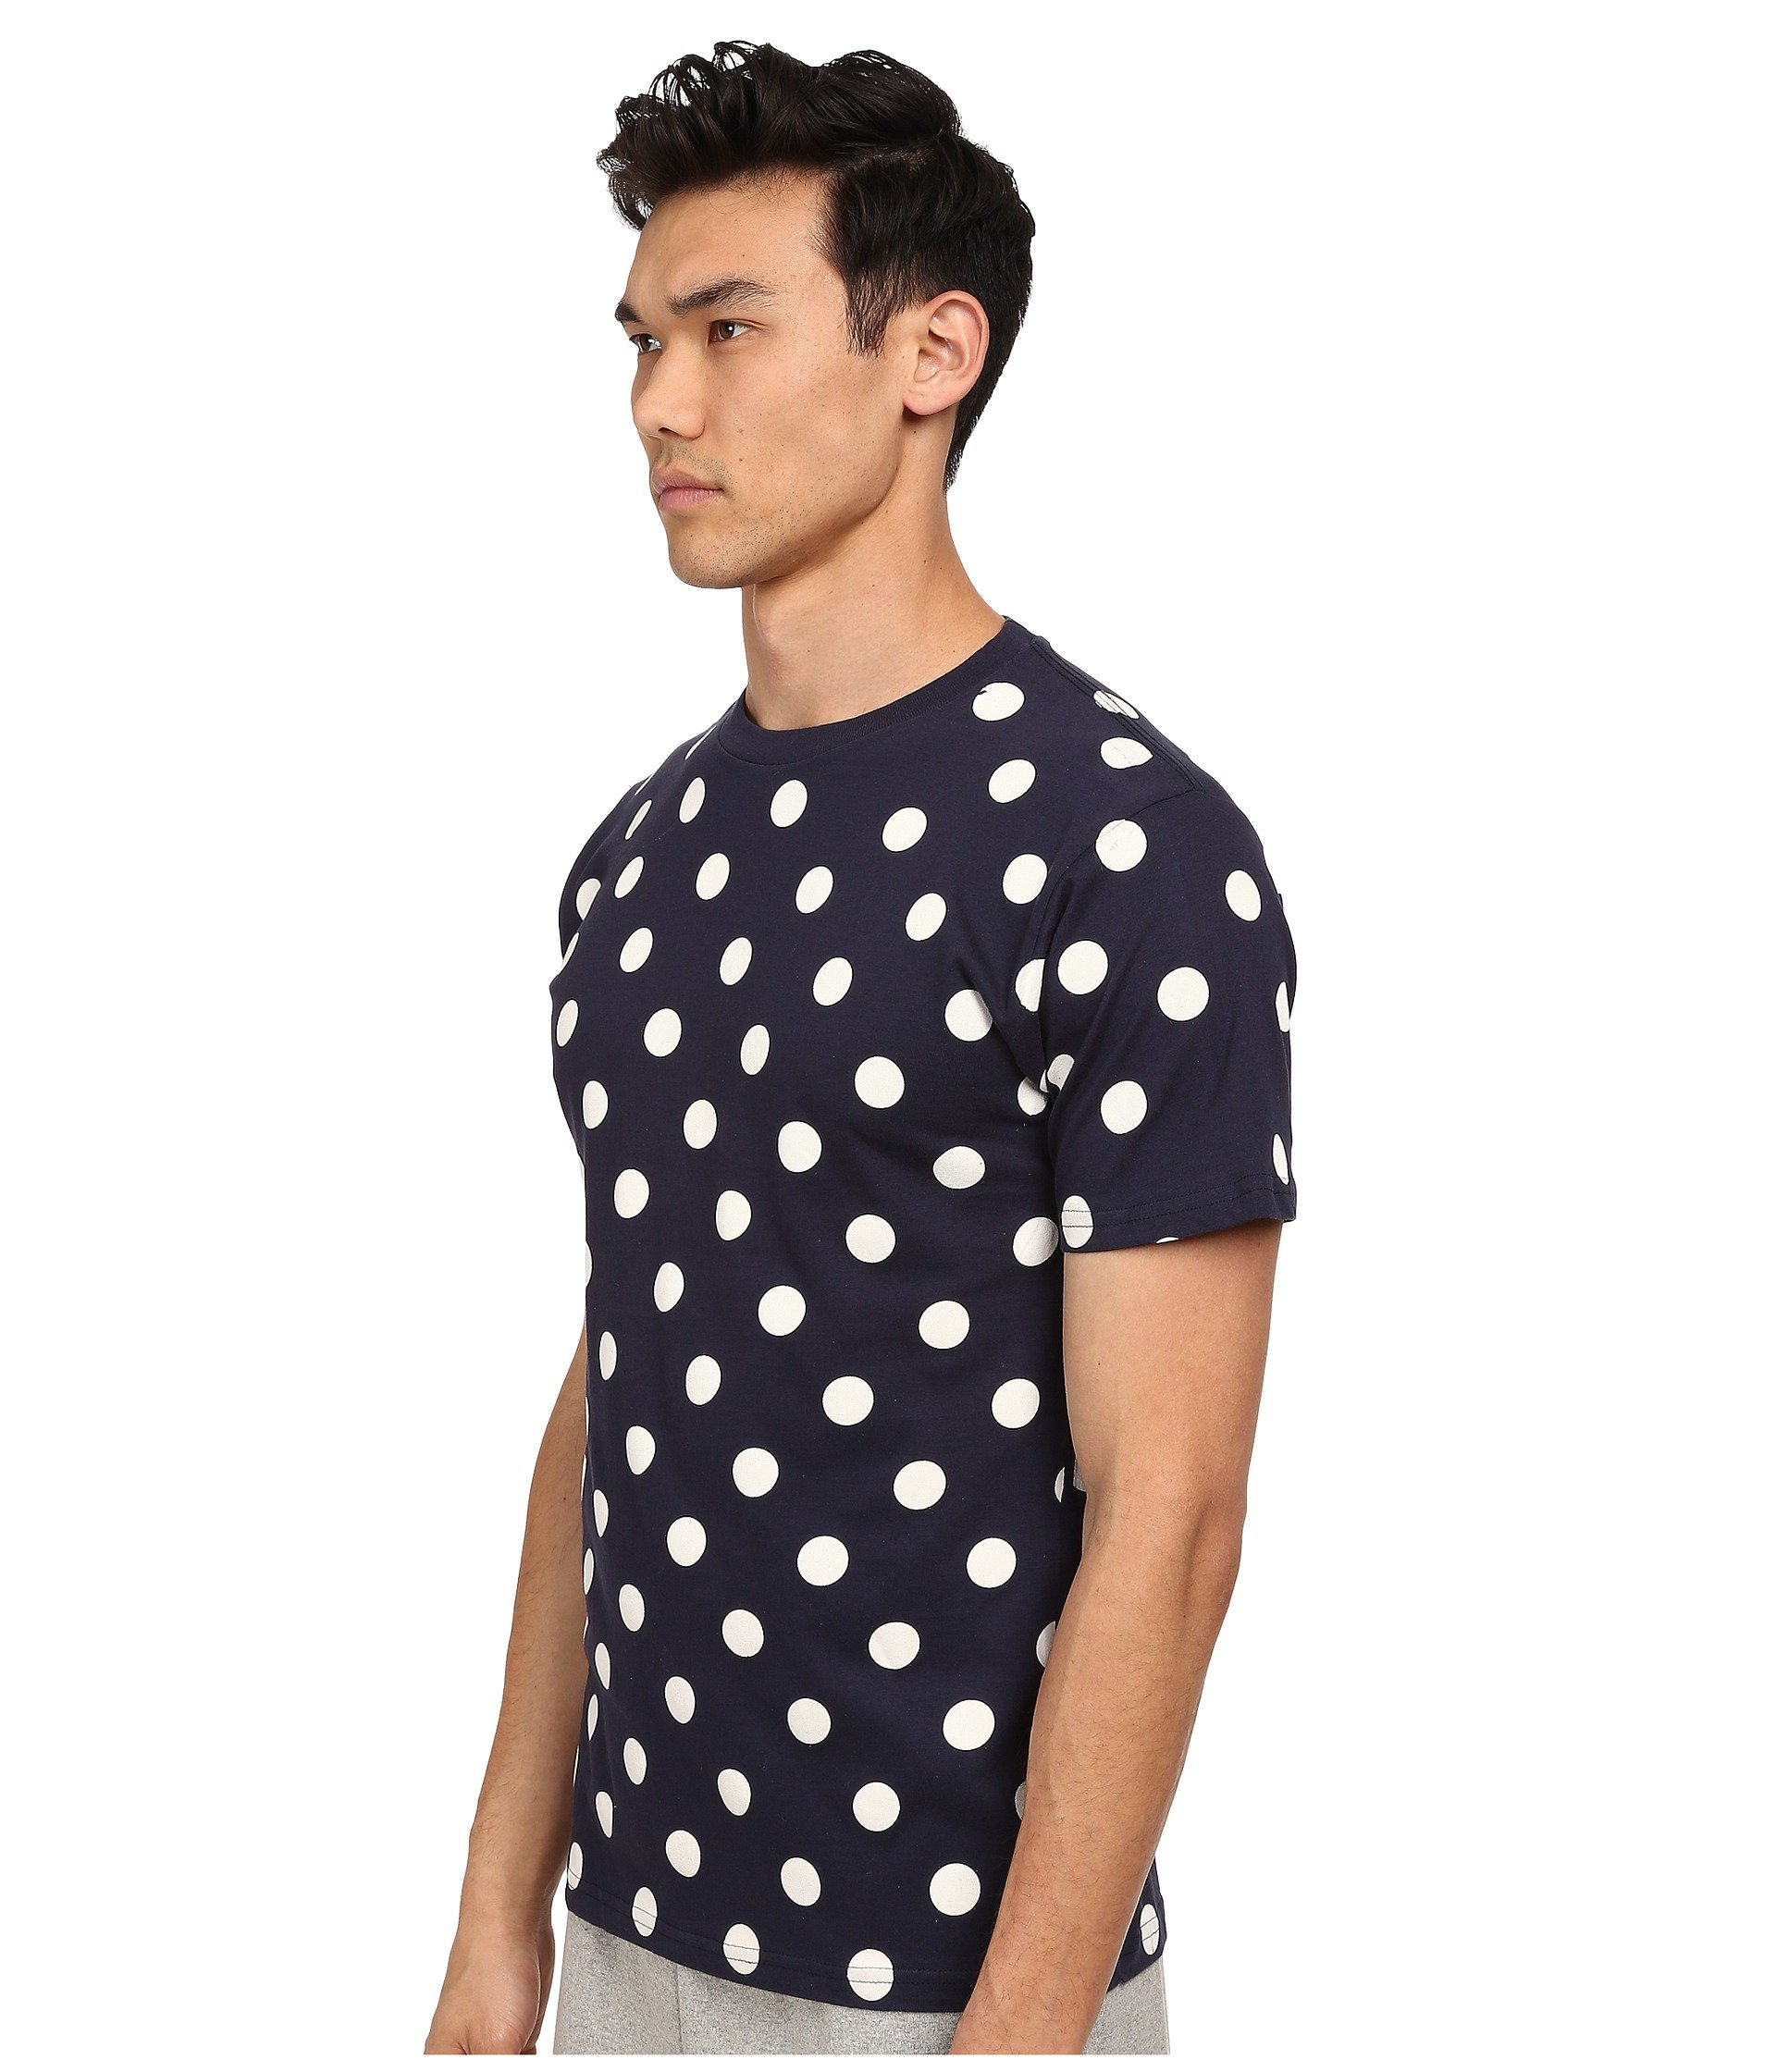 Buy low price, high quality black white polka dot tee with worldwide shipping on angrydog.ga